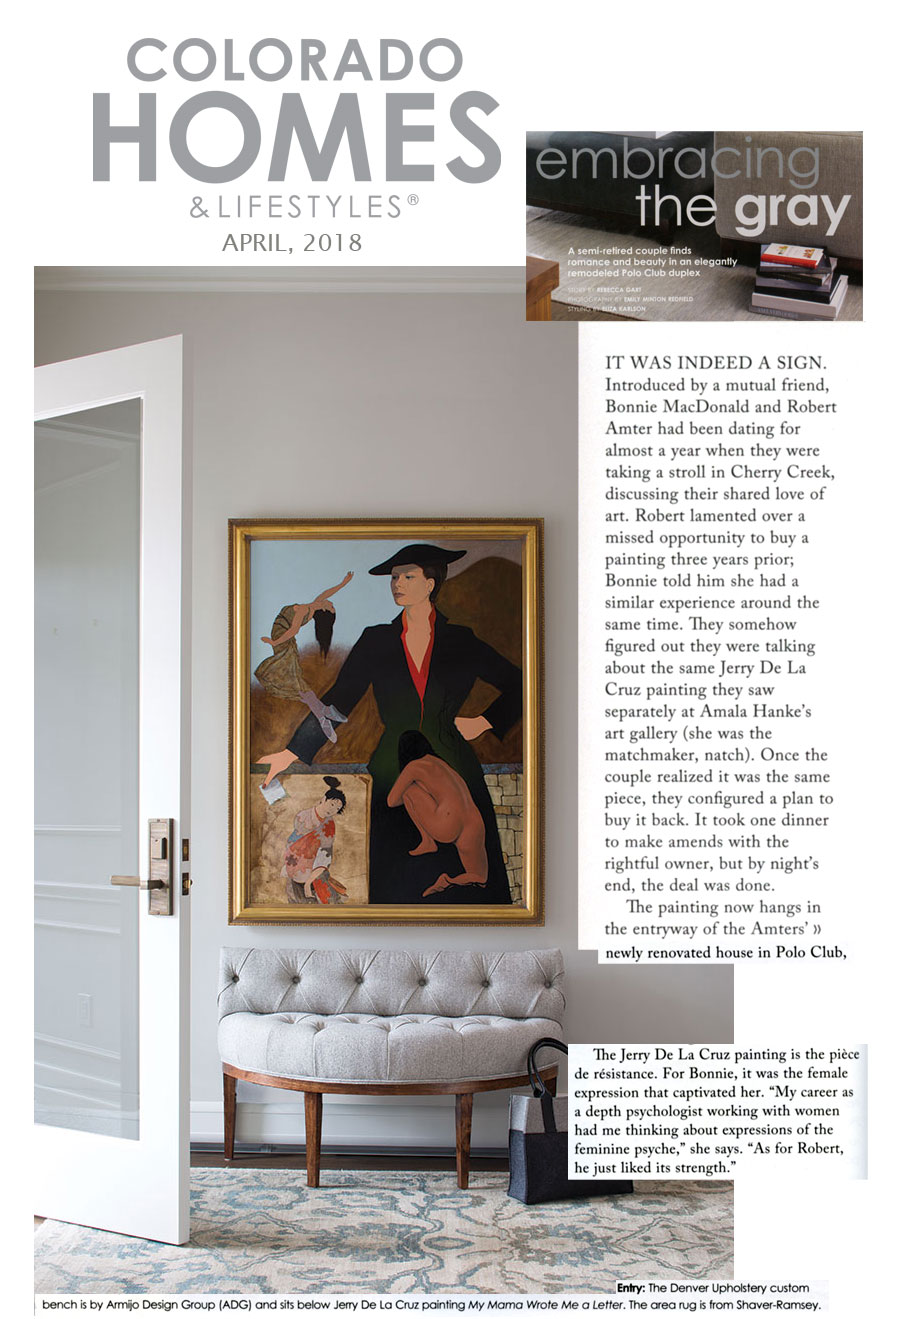 Colorado Homes & Lifestyles Article re artist Jerry De La Cruz